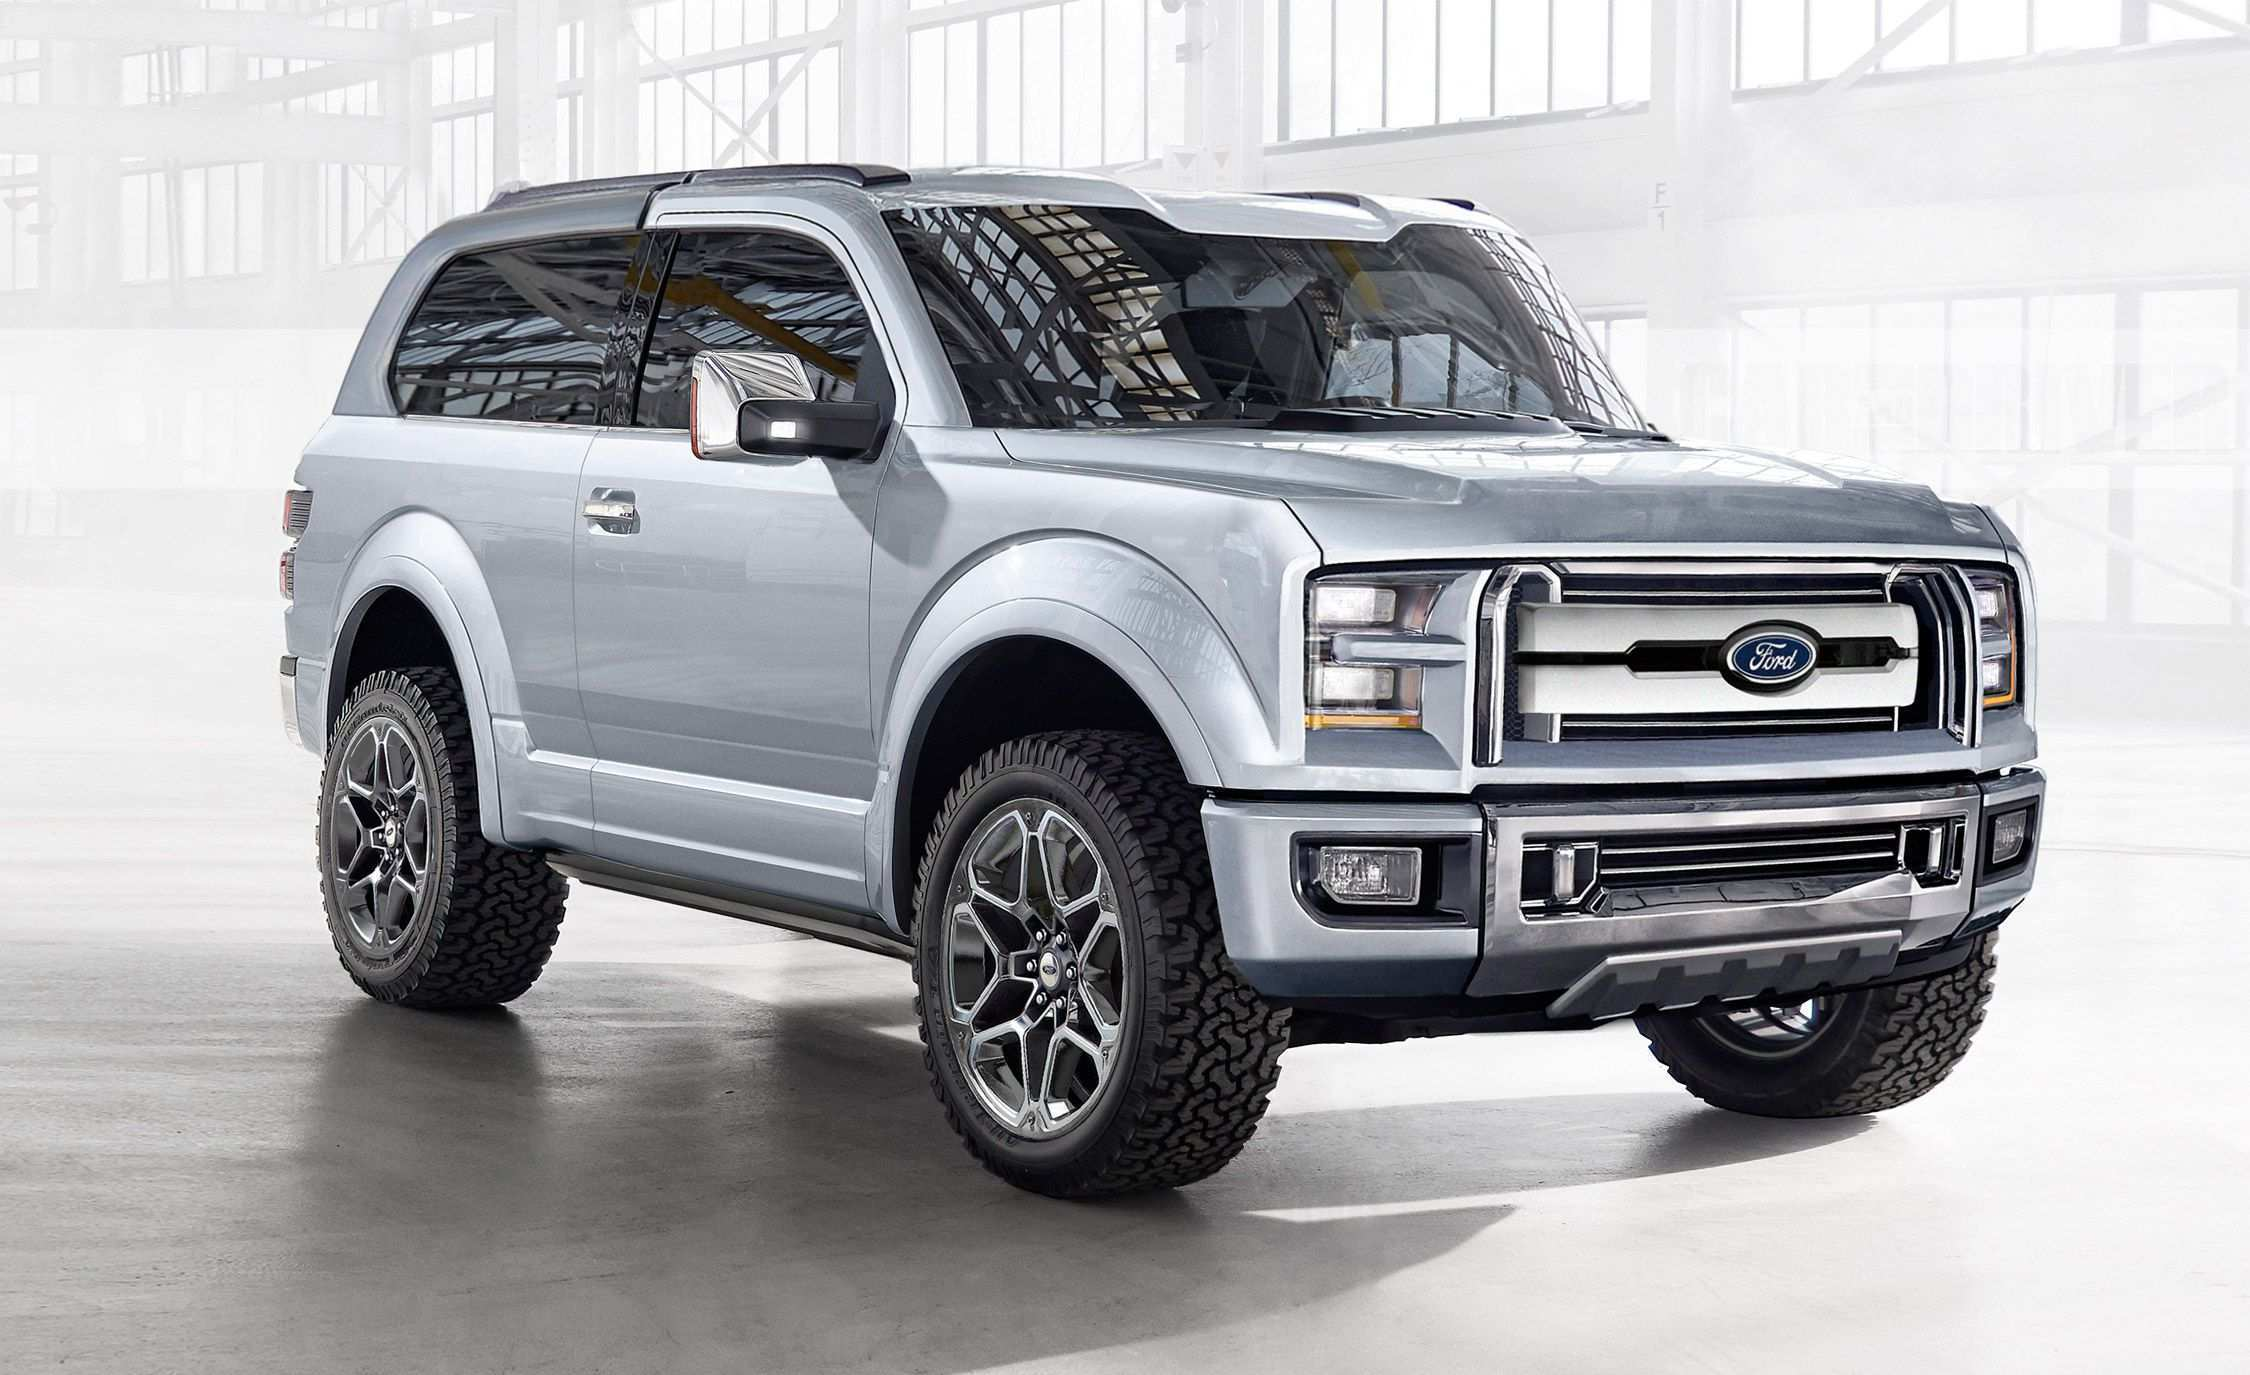 85 Great 2020 Ford Bronco Msrp Specs and Review by 2020 Ford Bronco Msrp